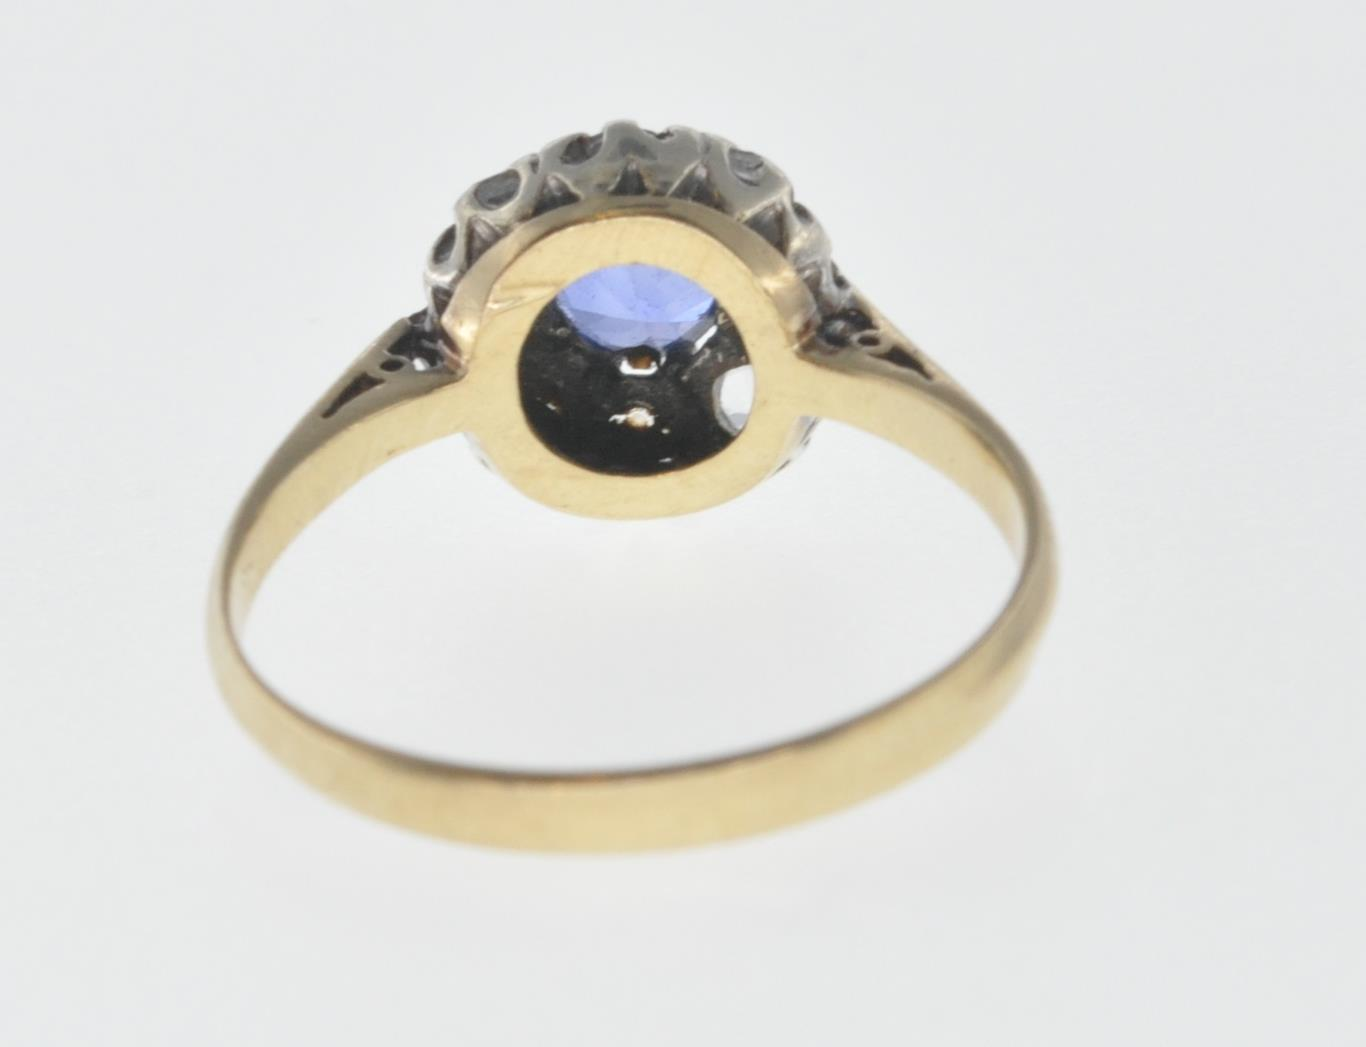 9CT GOLD BLUE AND WHITE STONE CUSTER RING - Image 4 of 6